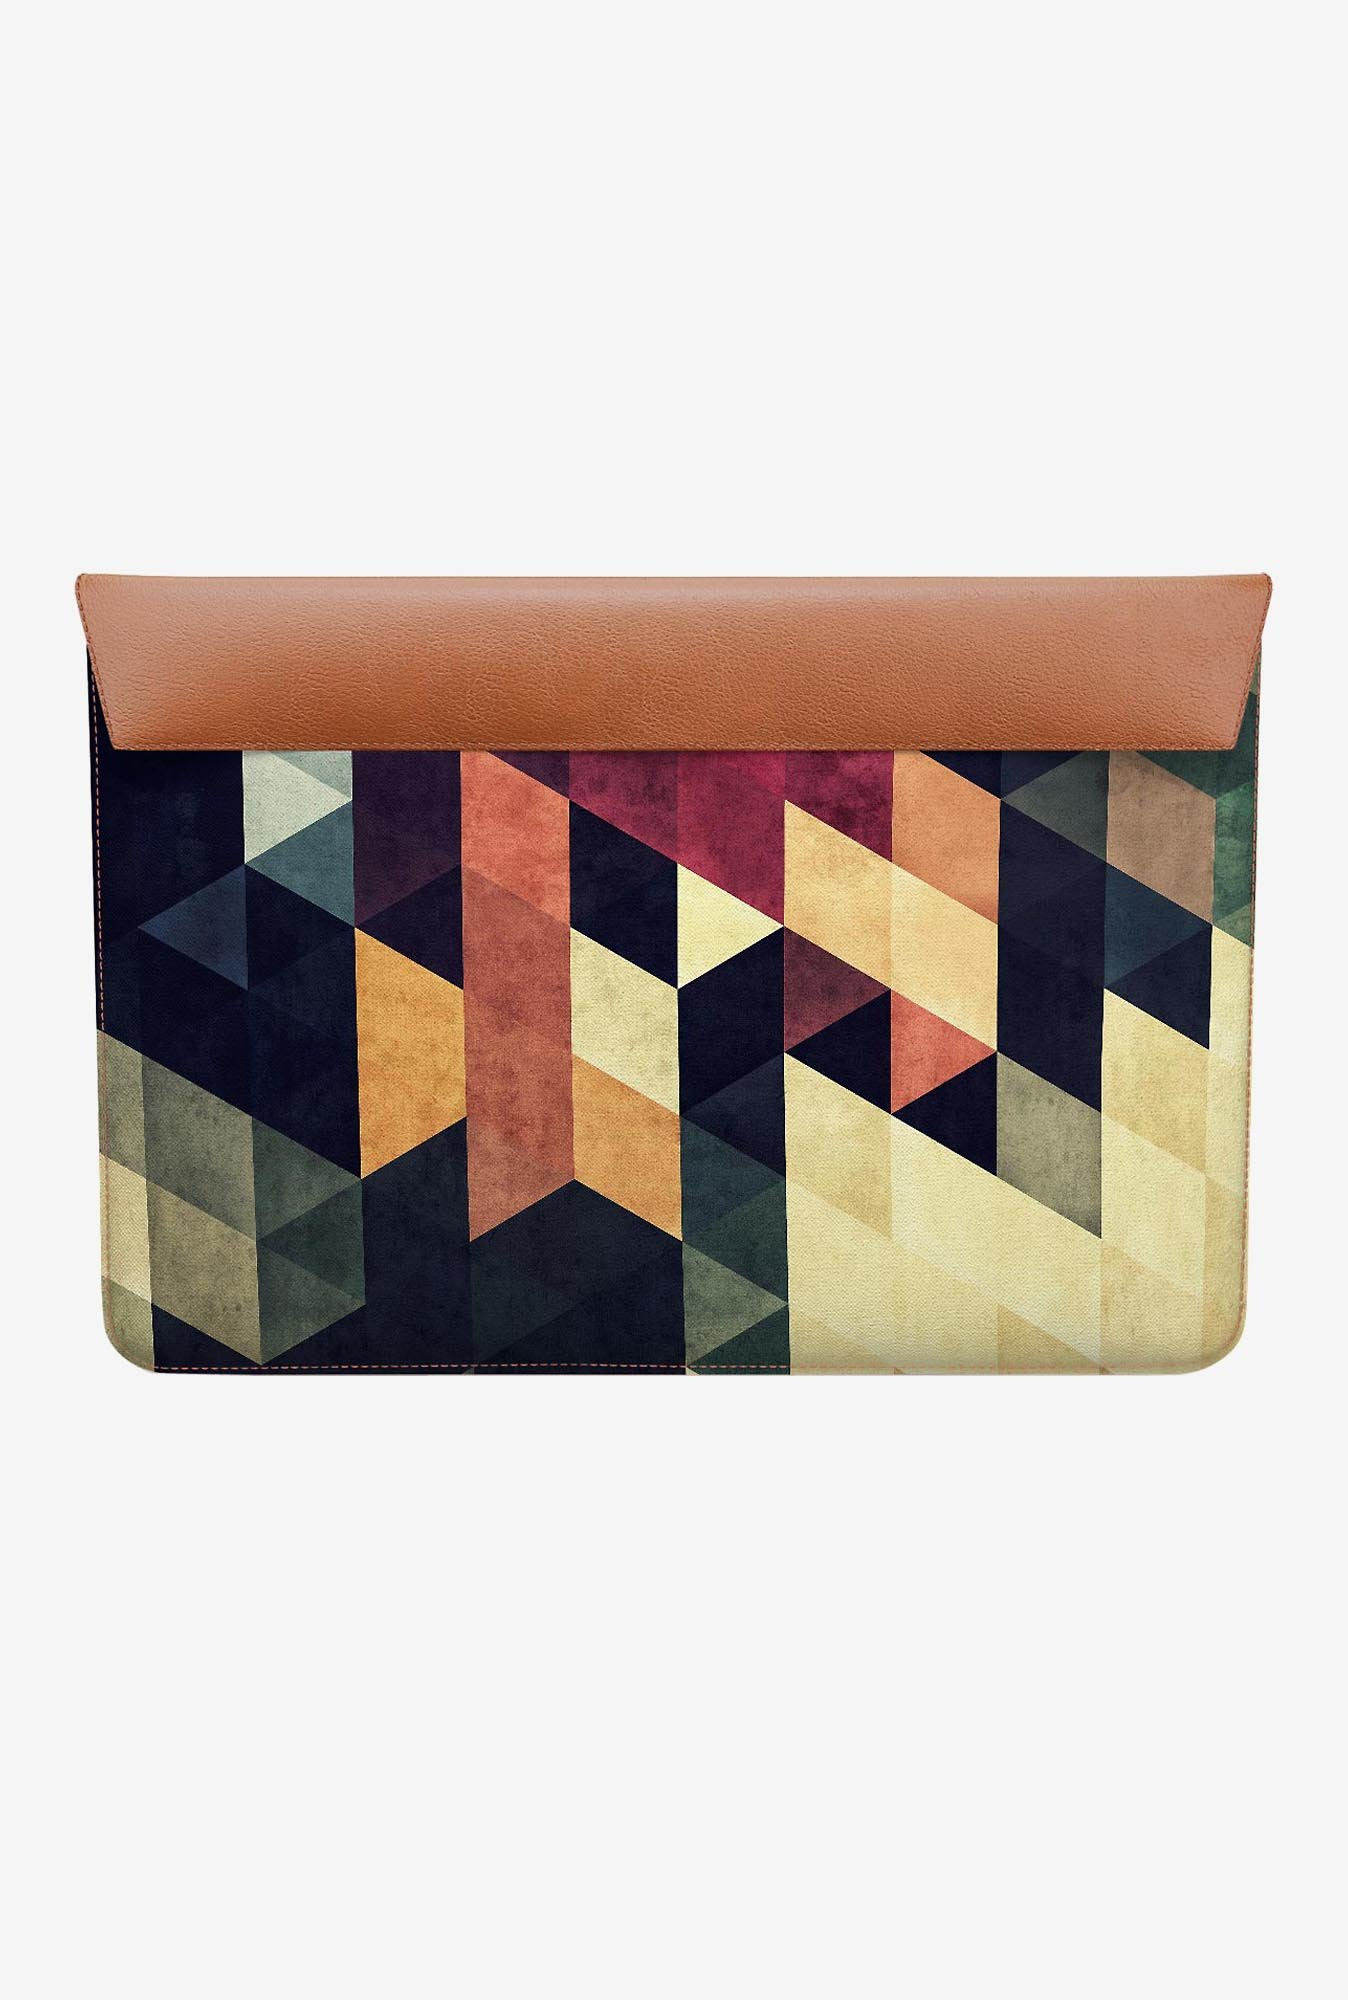 DailyObjects yncyrtyynty MacBook Air 11 Envelope Sleeve